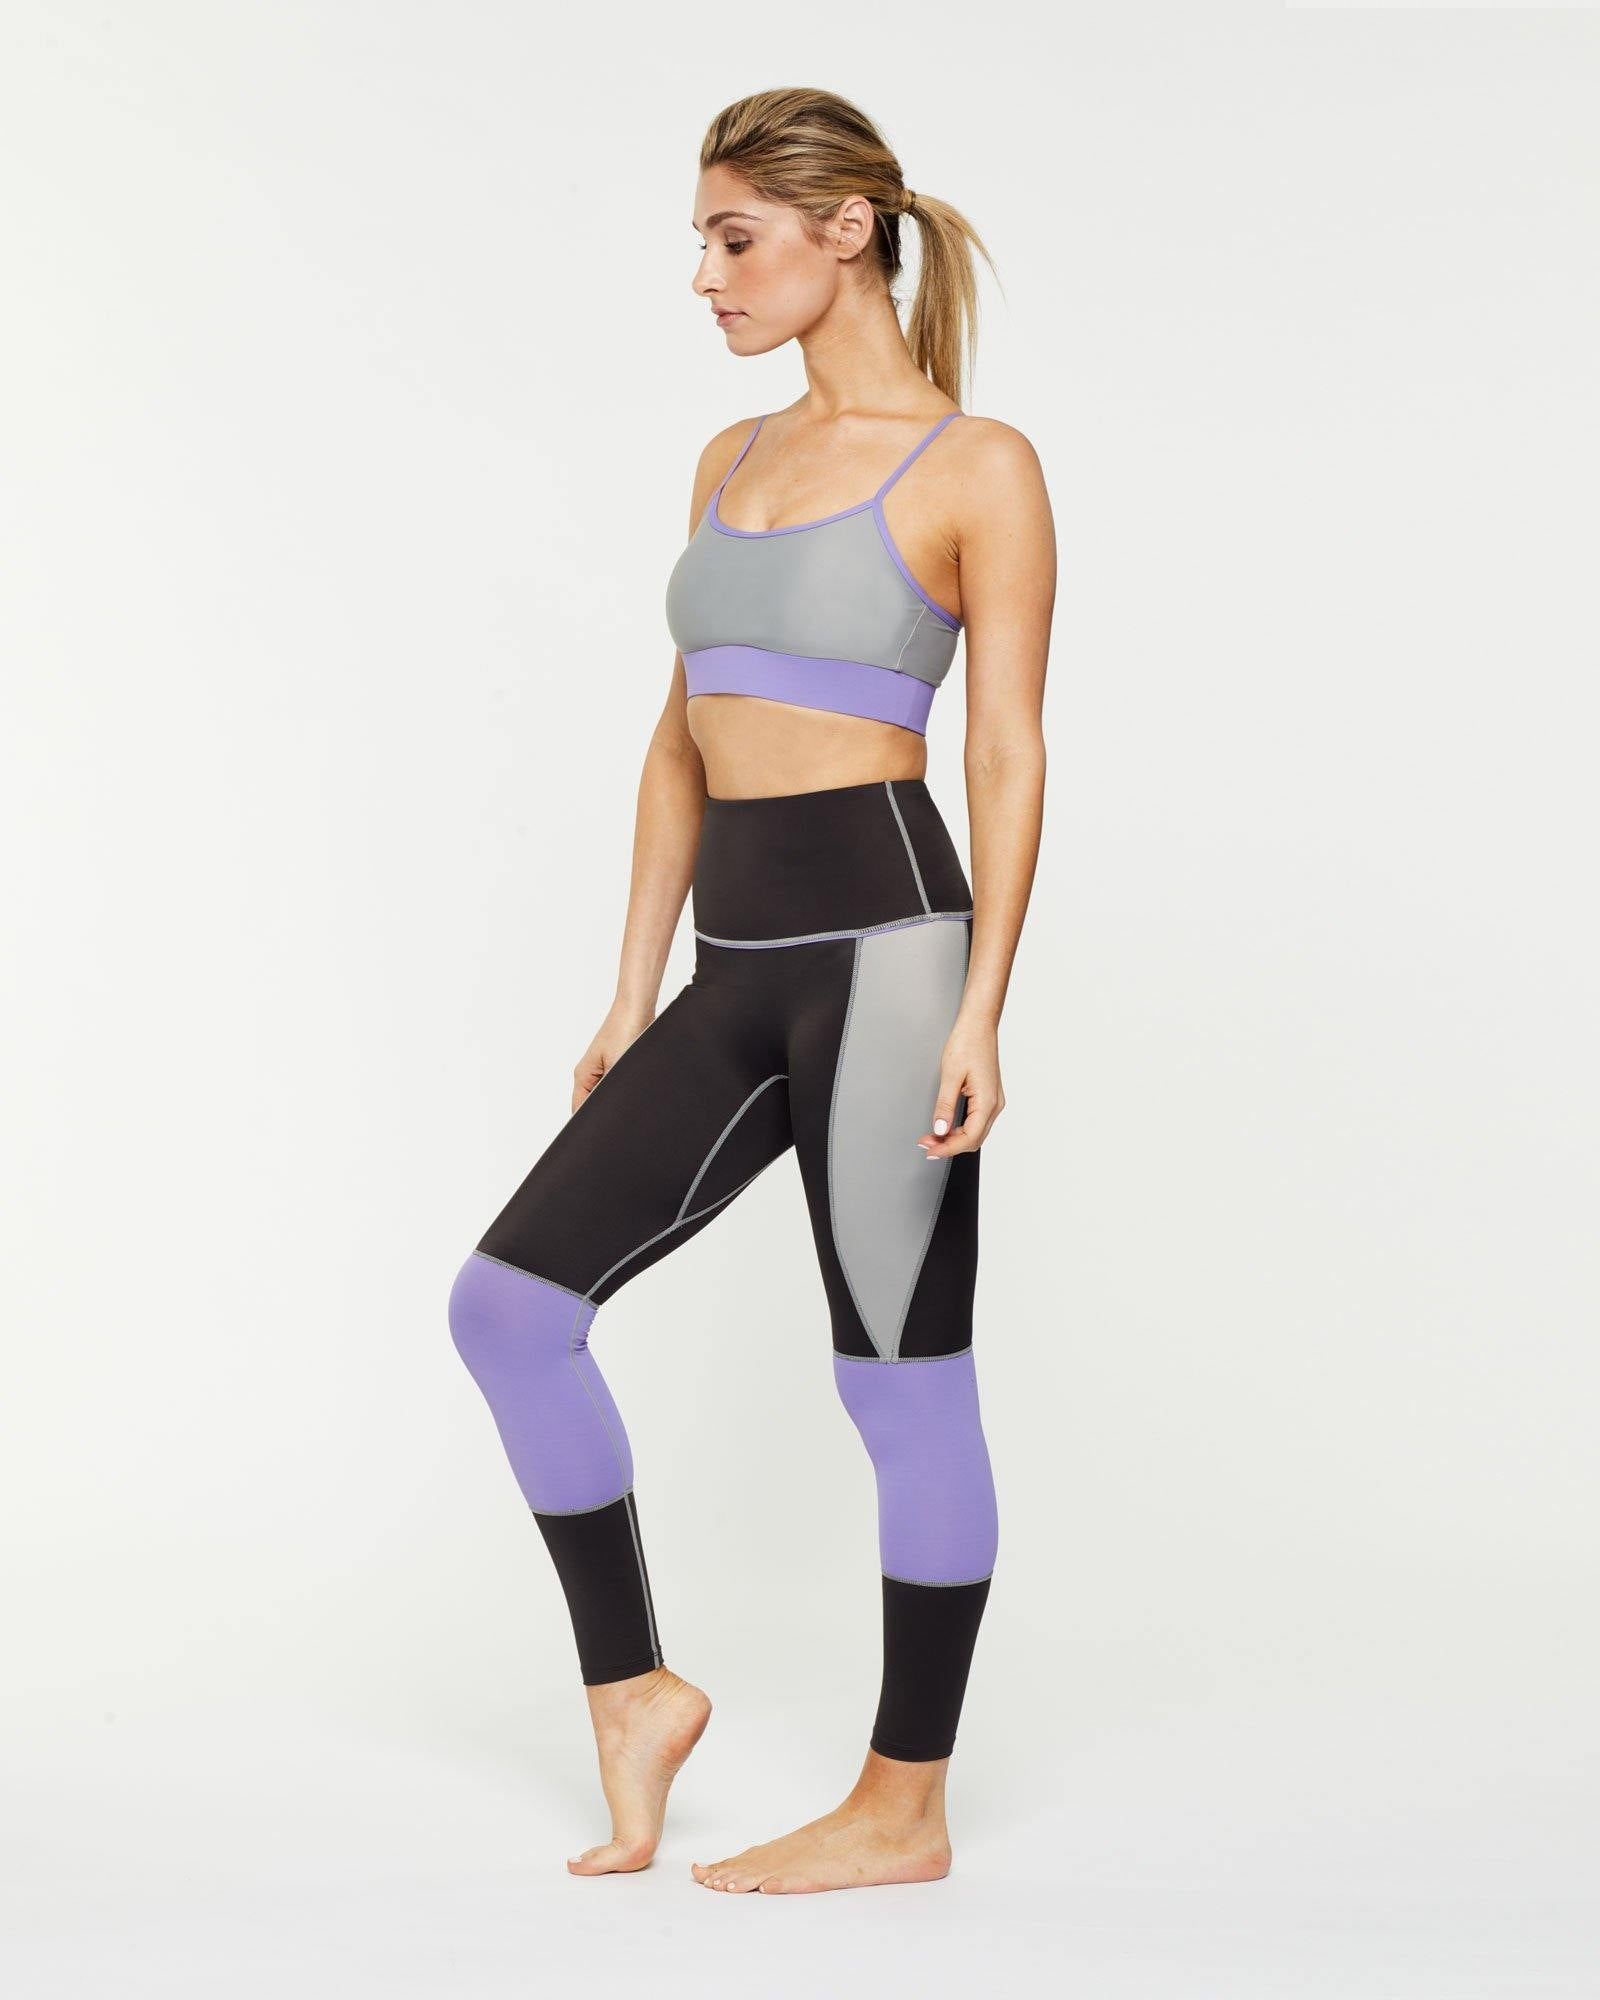 STEELY GRACILIS 7/8 high waisted LEGGING LIQUORICE GREY WITH CONTRAST PANELS WORN WITH INFRASPINATUS BRA TOP, SIDE VIEW